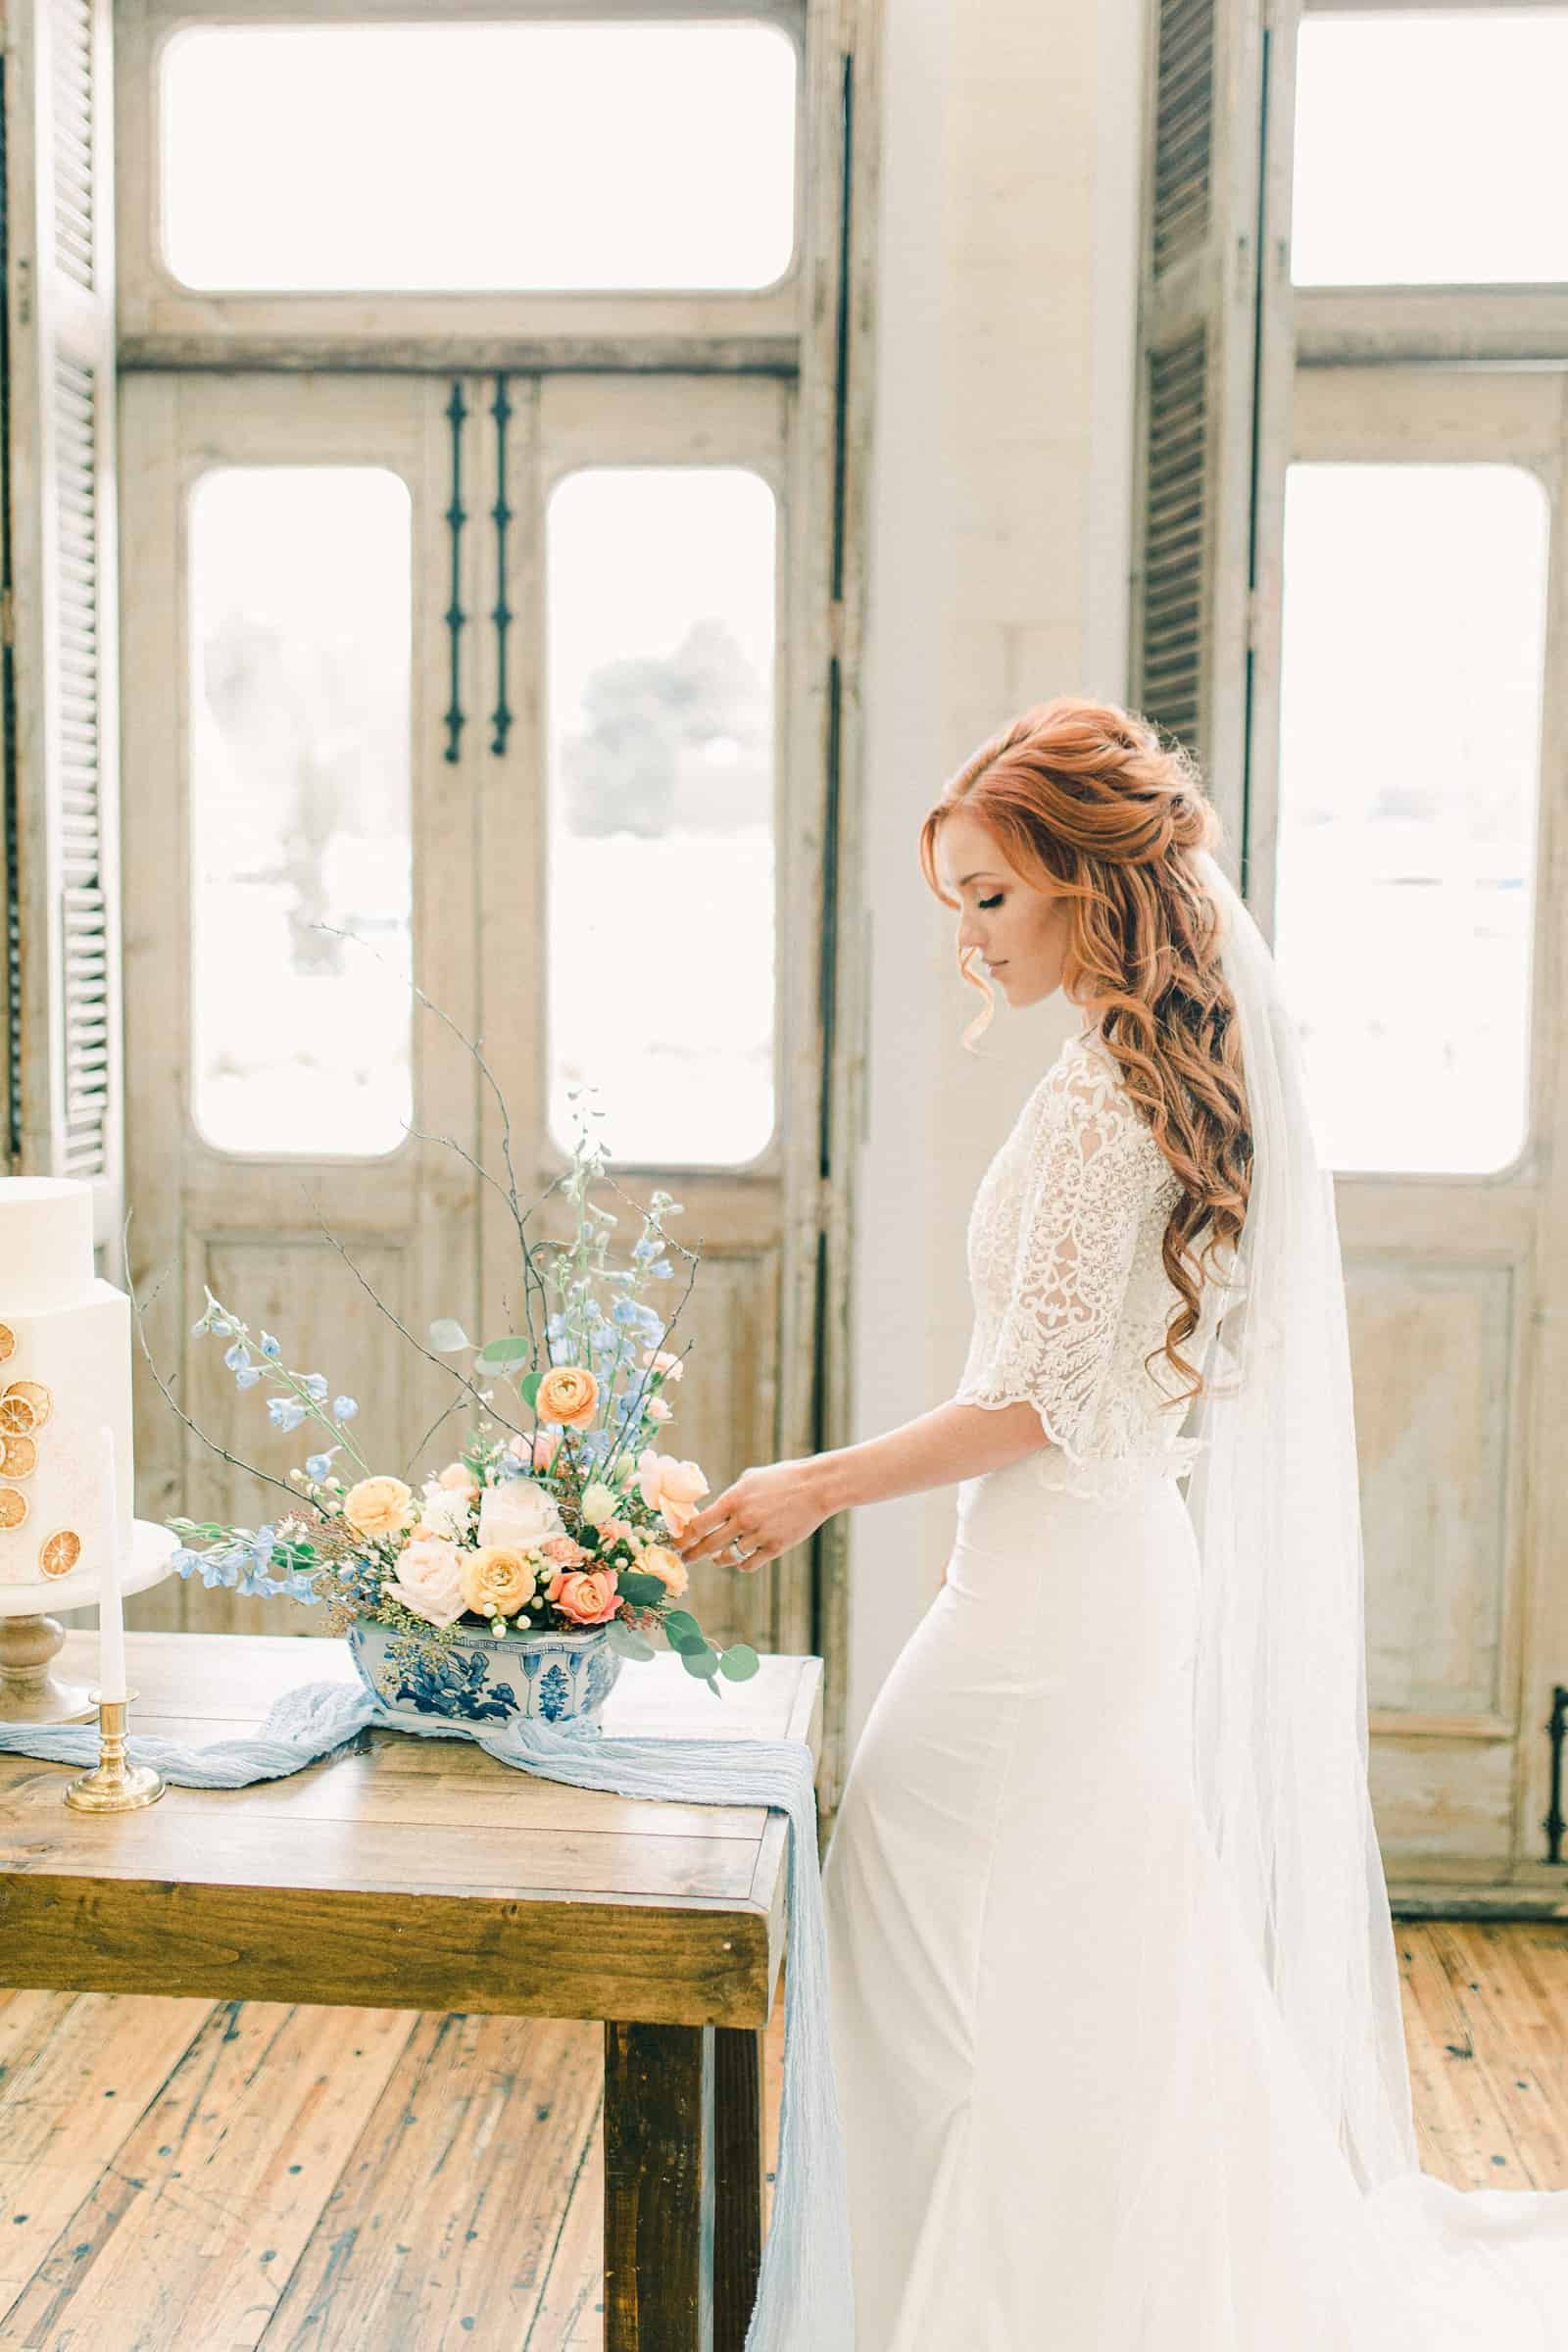 Bride with red hair wearing three quarter length sleeve lace wedding dress and veil, pastel wedding colors, spring wedding centerpiece and small simple wedding cake with oranges